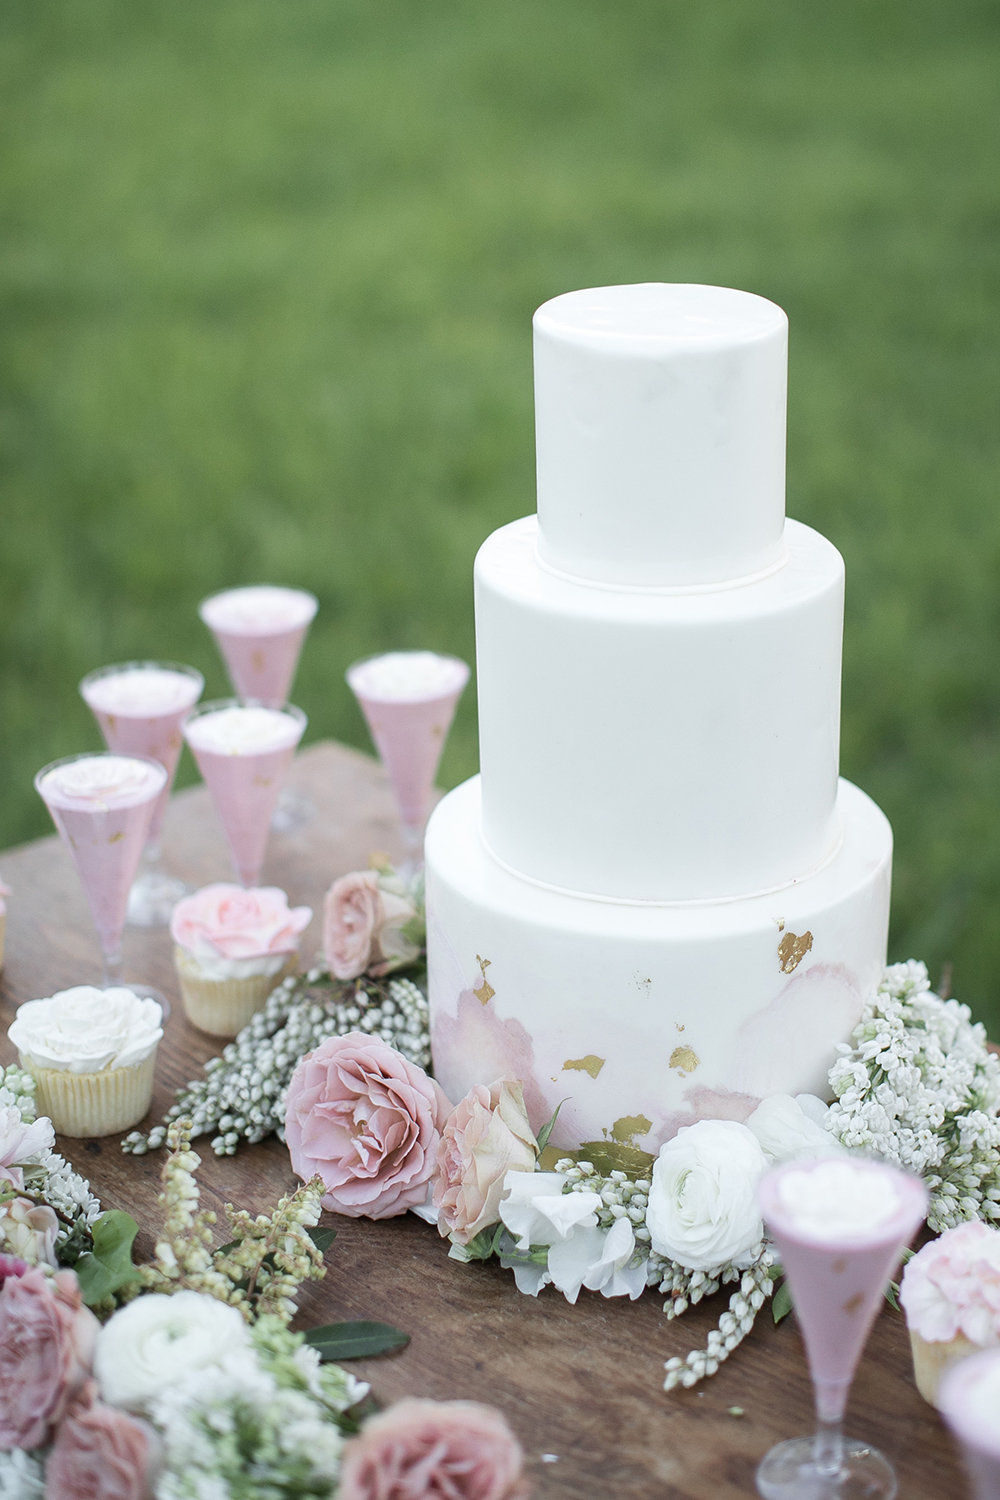 white wedding cakes - photo by Tyler Rye Photography http://ruffledblog.com/romantic-coastal-california-wedding-inspiration